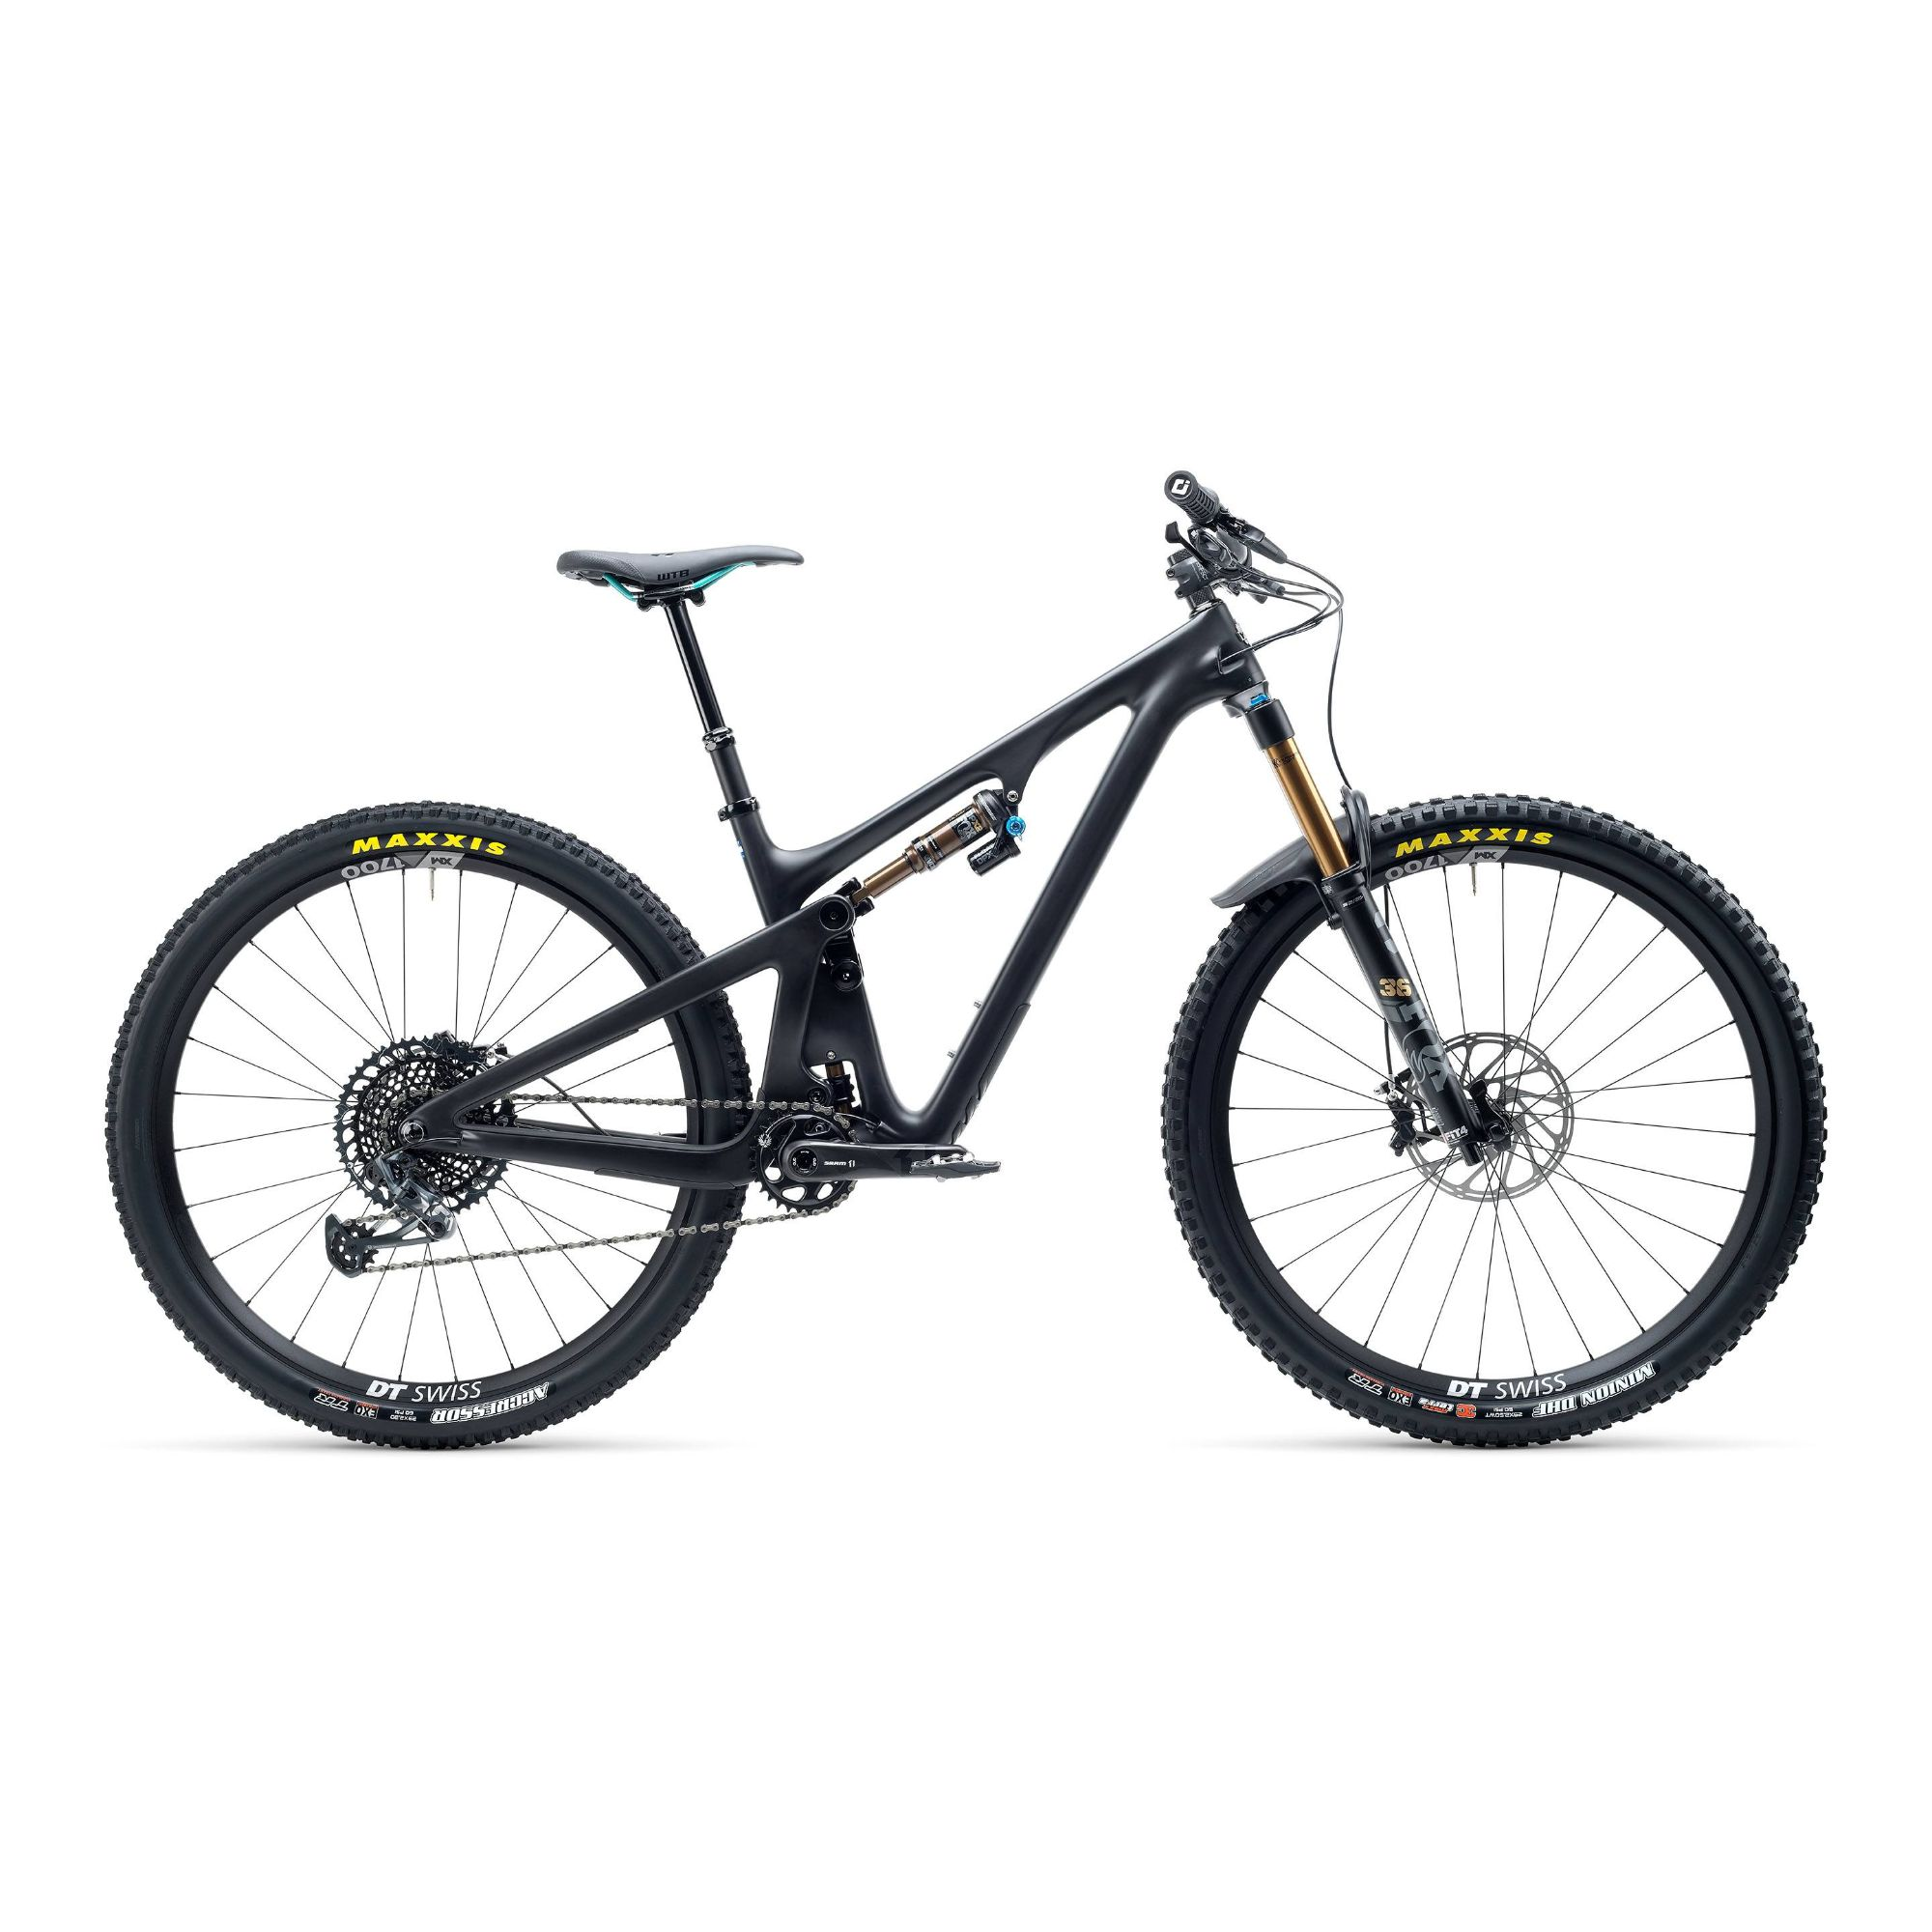 Yeti SB130 T Series T2 GX Lunchride 29r Carbon Mountain Bike 2021 Raw